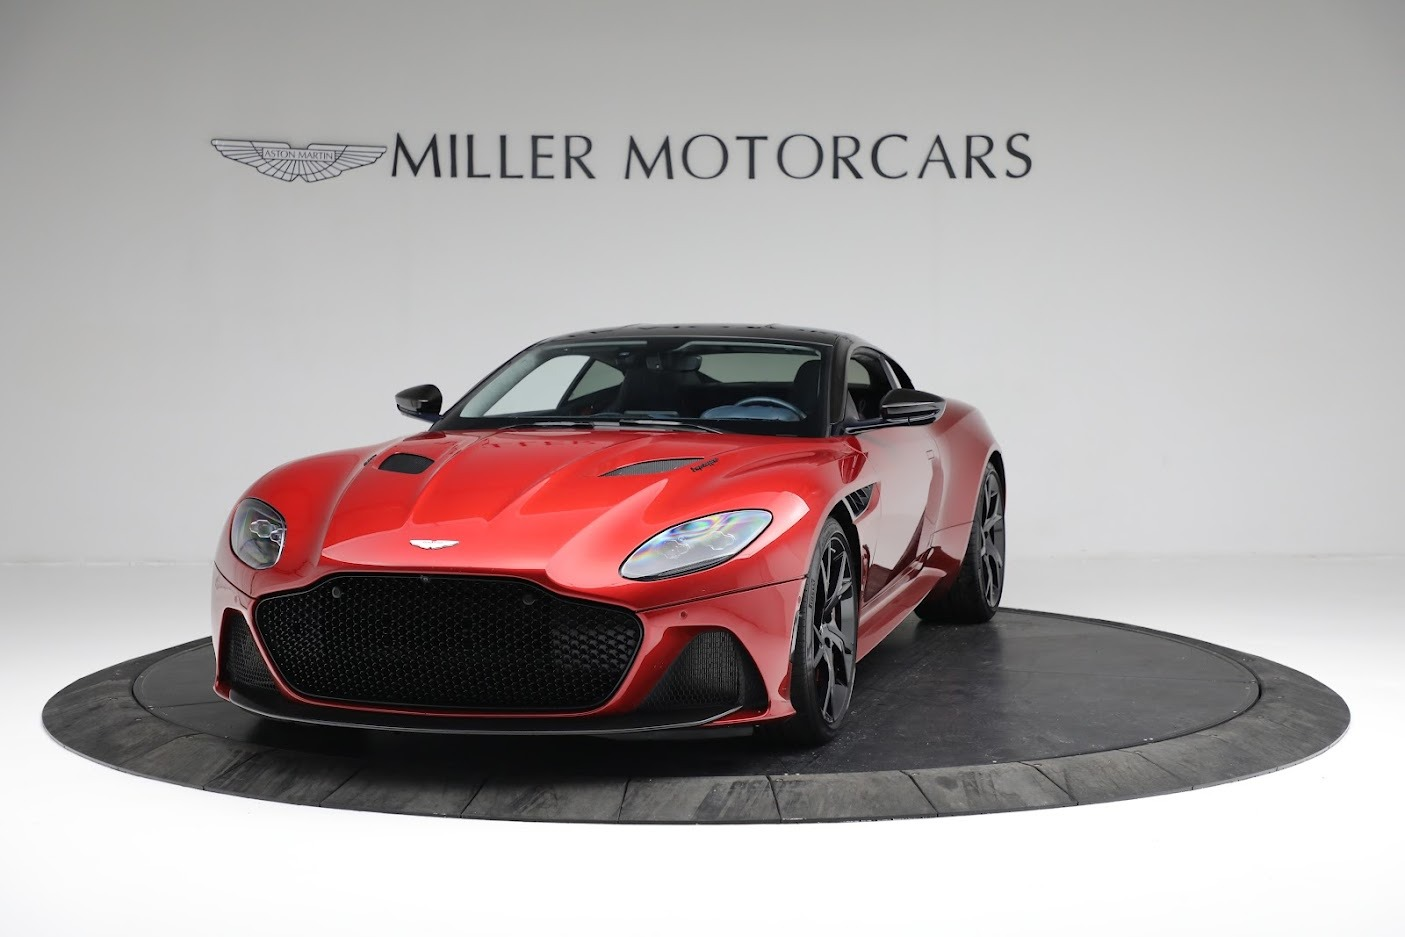 Used 2019 Aston Martin DBS Superleggera For Sale In Westport, CT 3471_p12